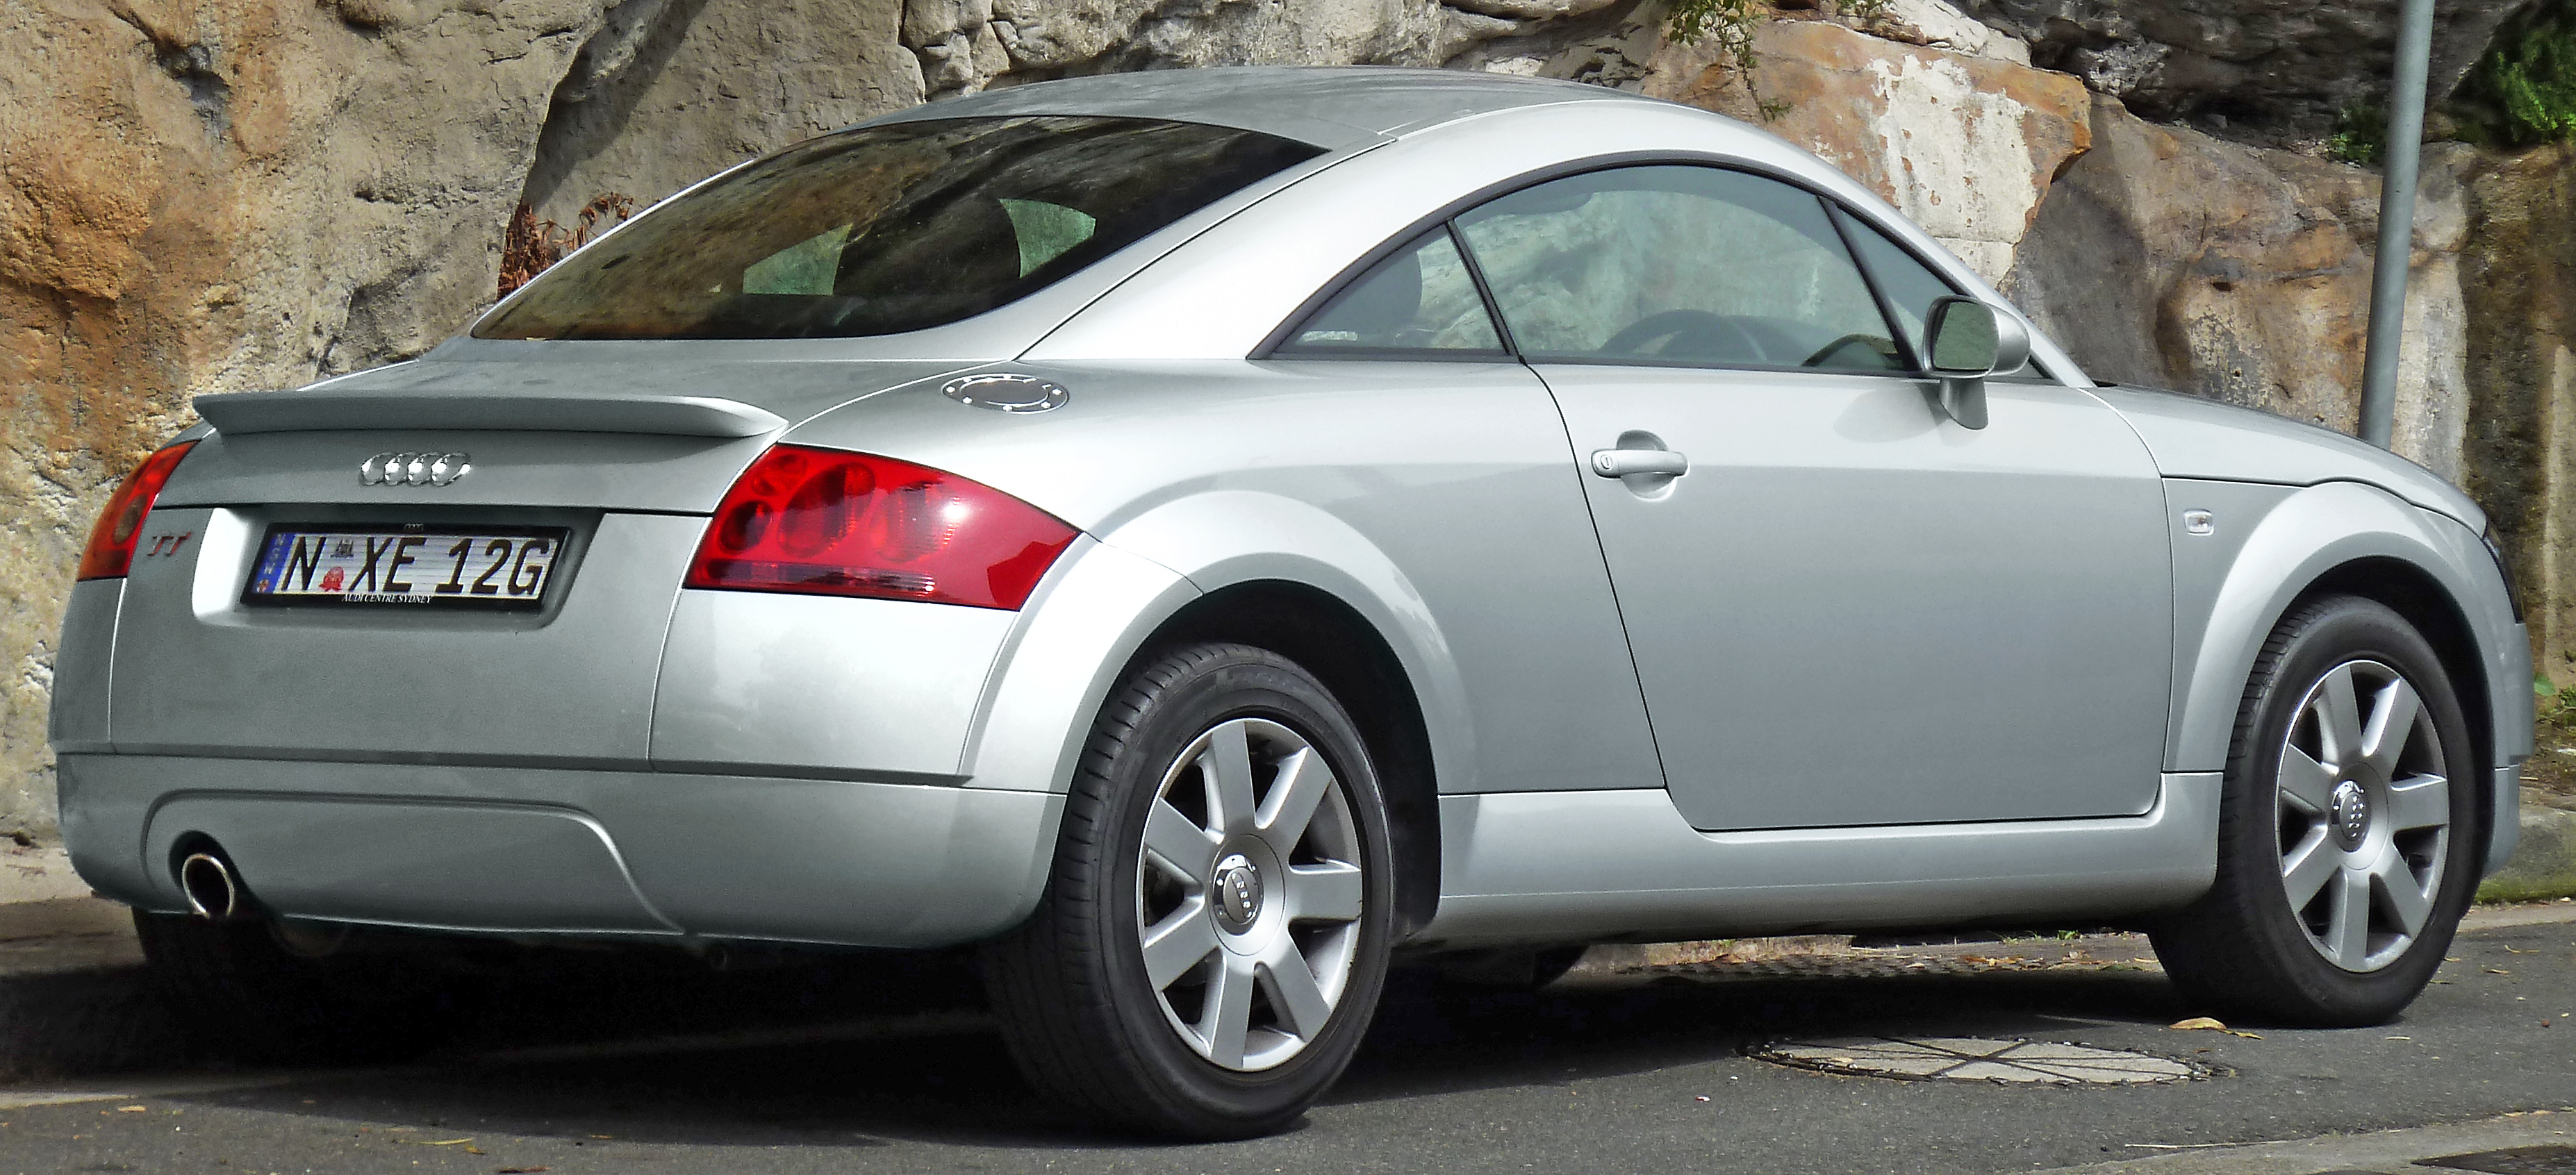 2003 audi tt information and photos momentcar. Black Bedroom Furniture Sets. Home Design Ideas